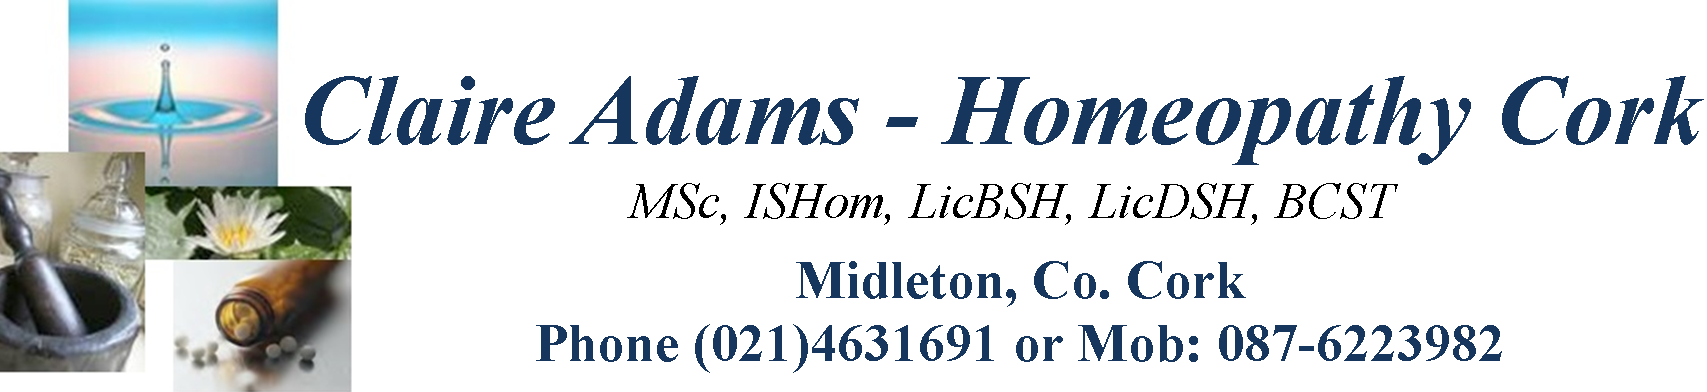 Claire Adams Homeopathy Cork Tel: (021) 4631691